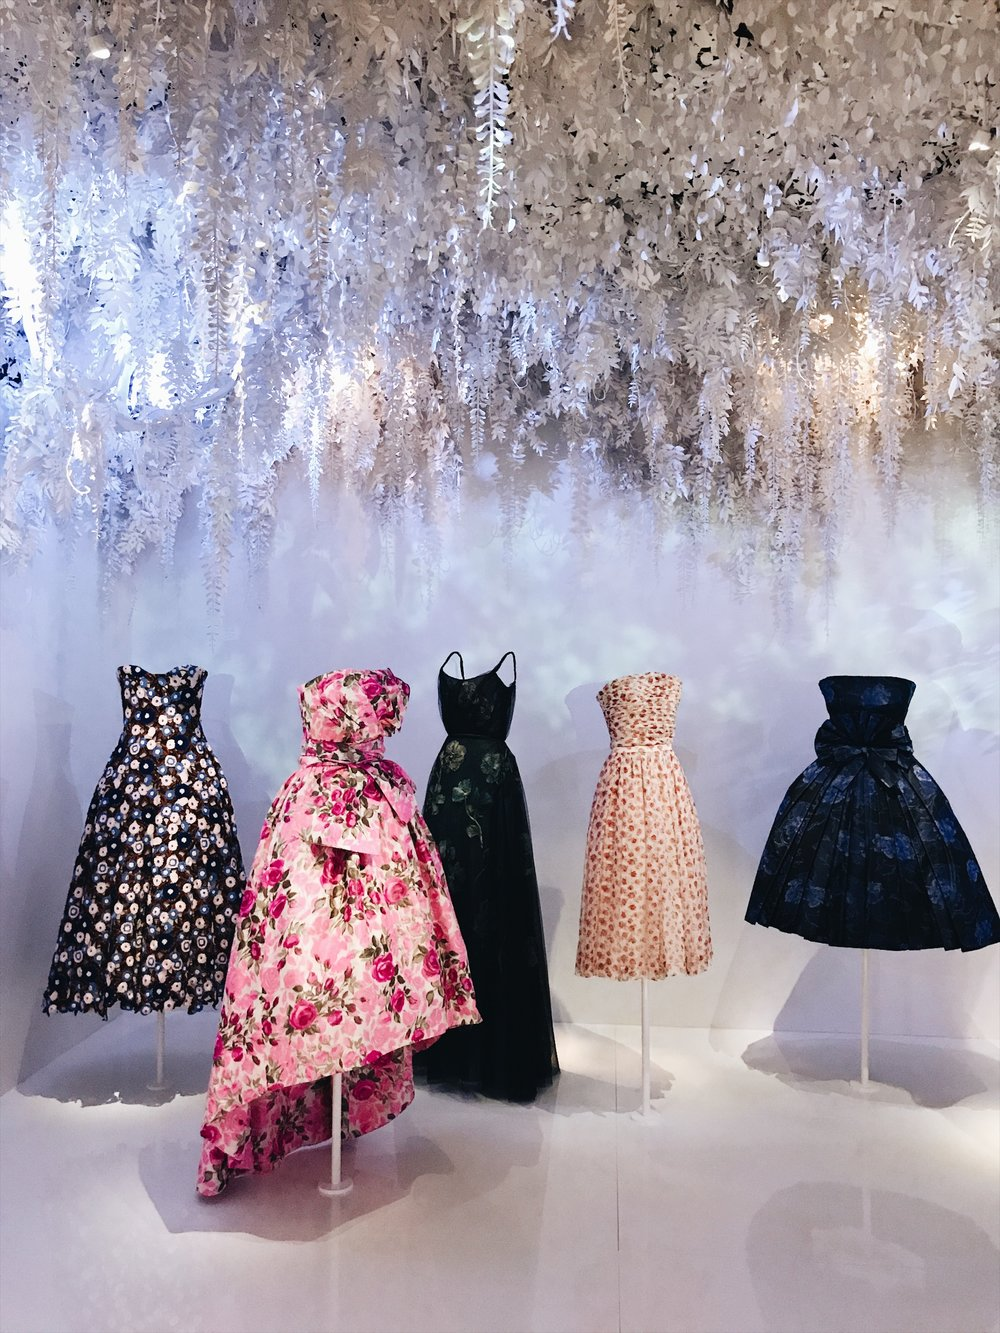 The Dior Gardens, a highlight of the exhibition